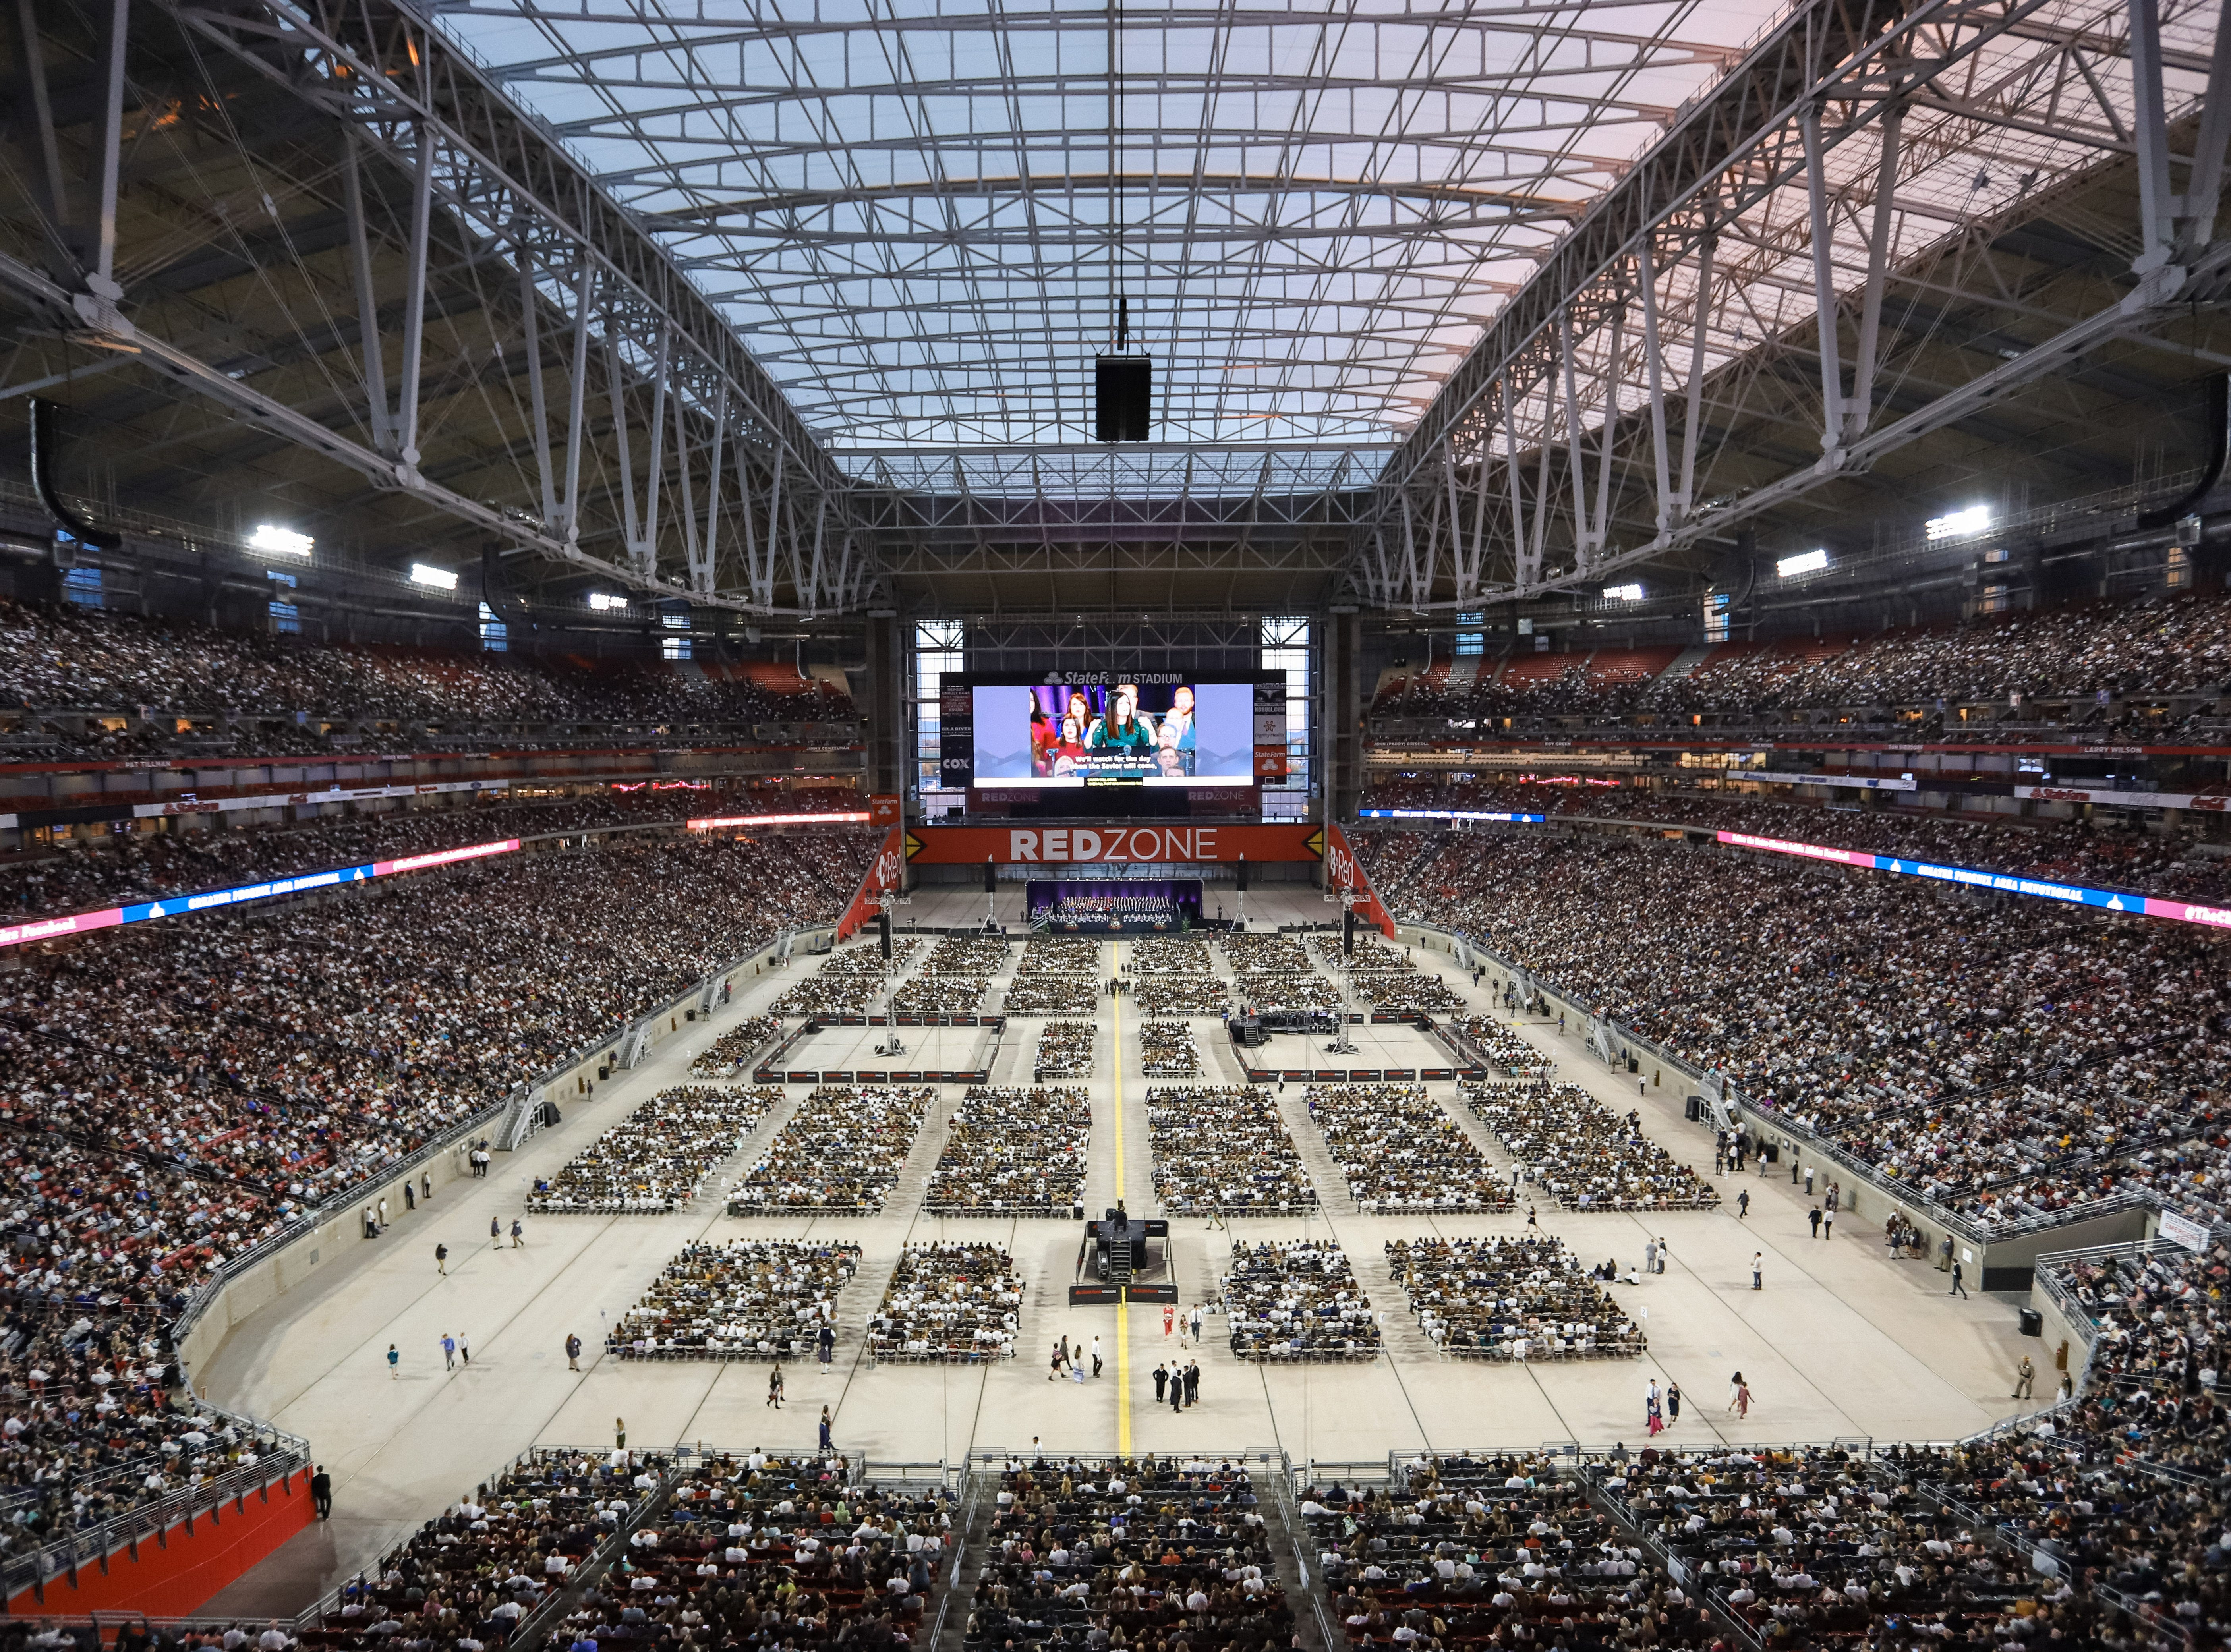 Thousands gather to hear President Russell M. Nelson, prophet of the Church of Jesus Christ of Latter-day Saints, at State Farm Stadium in Glendale, Arizona on Sunday, Feb. 10, 2019.